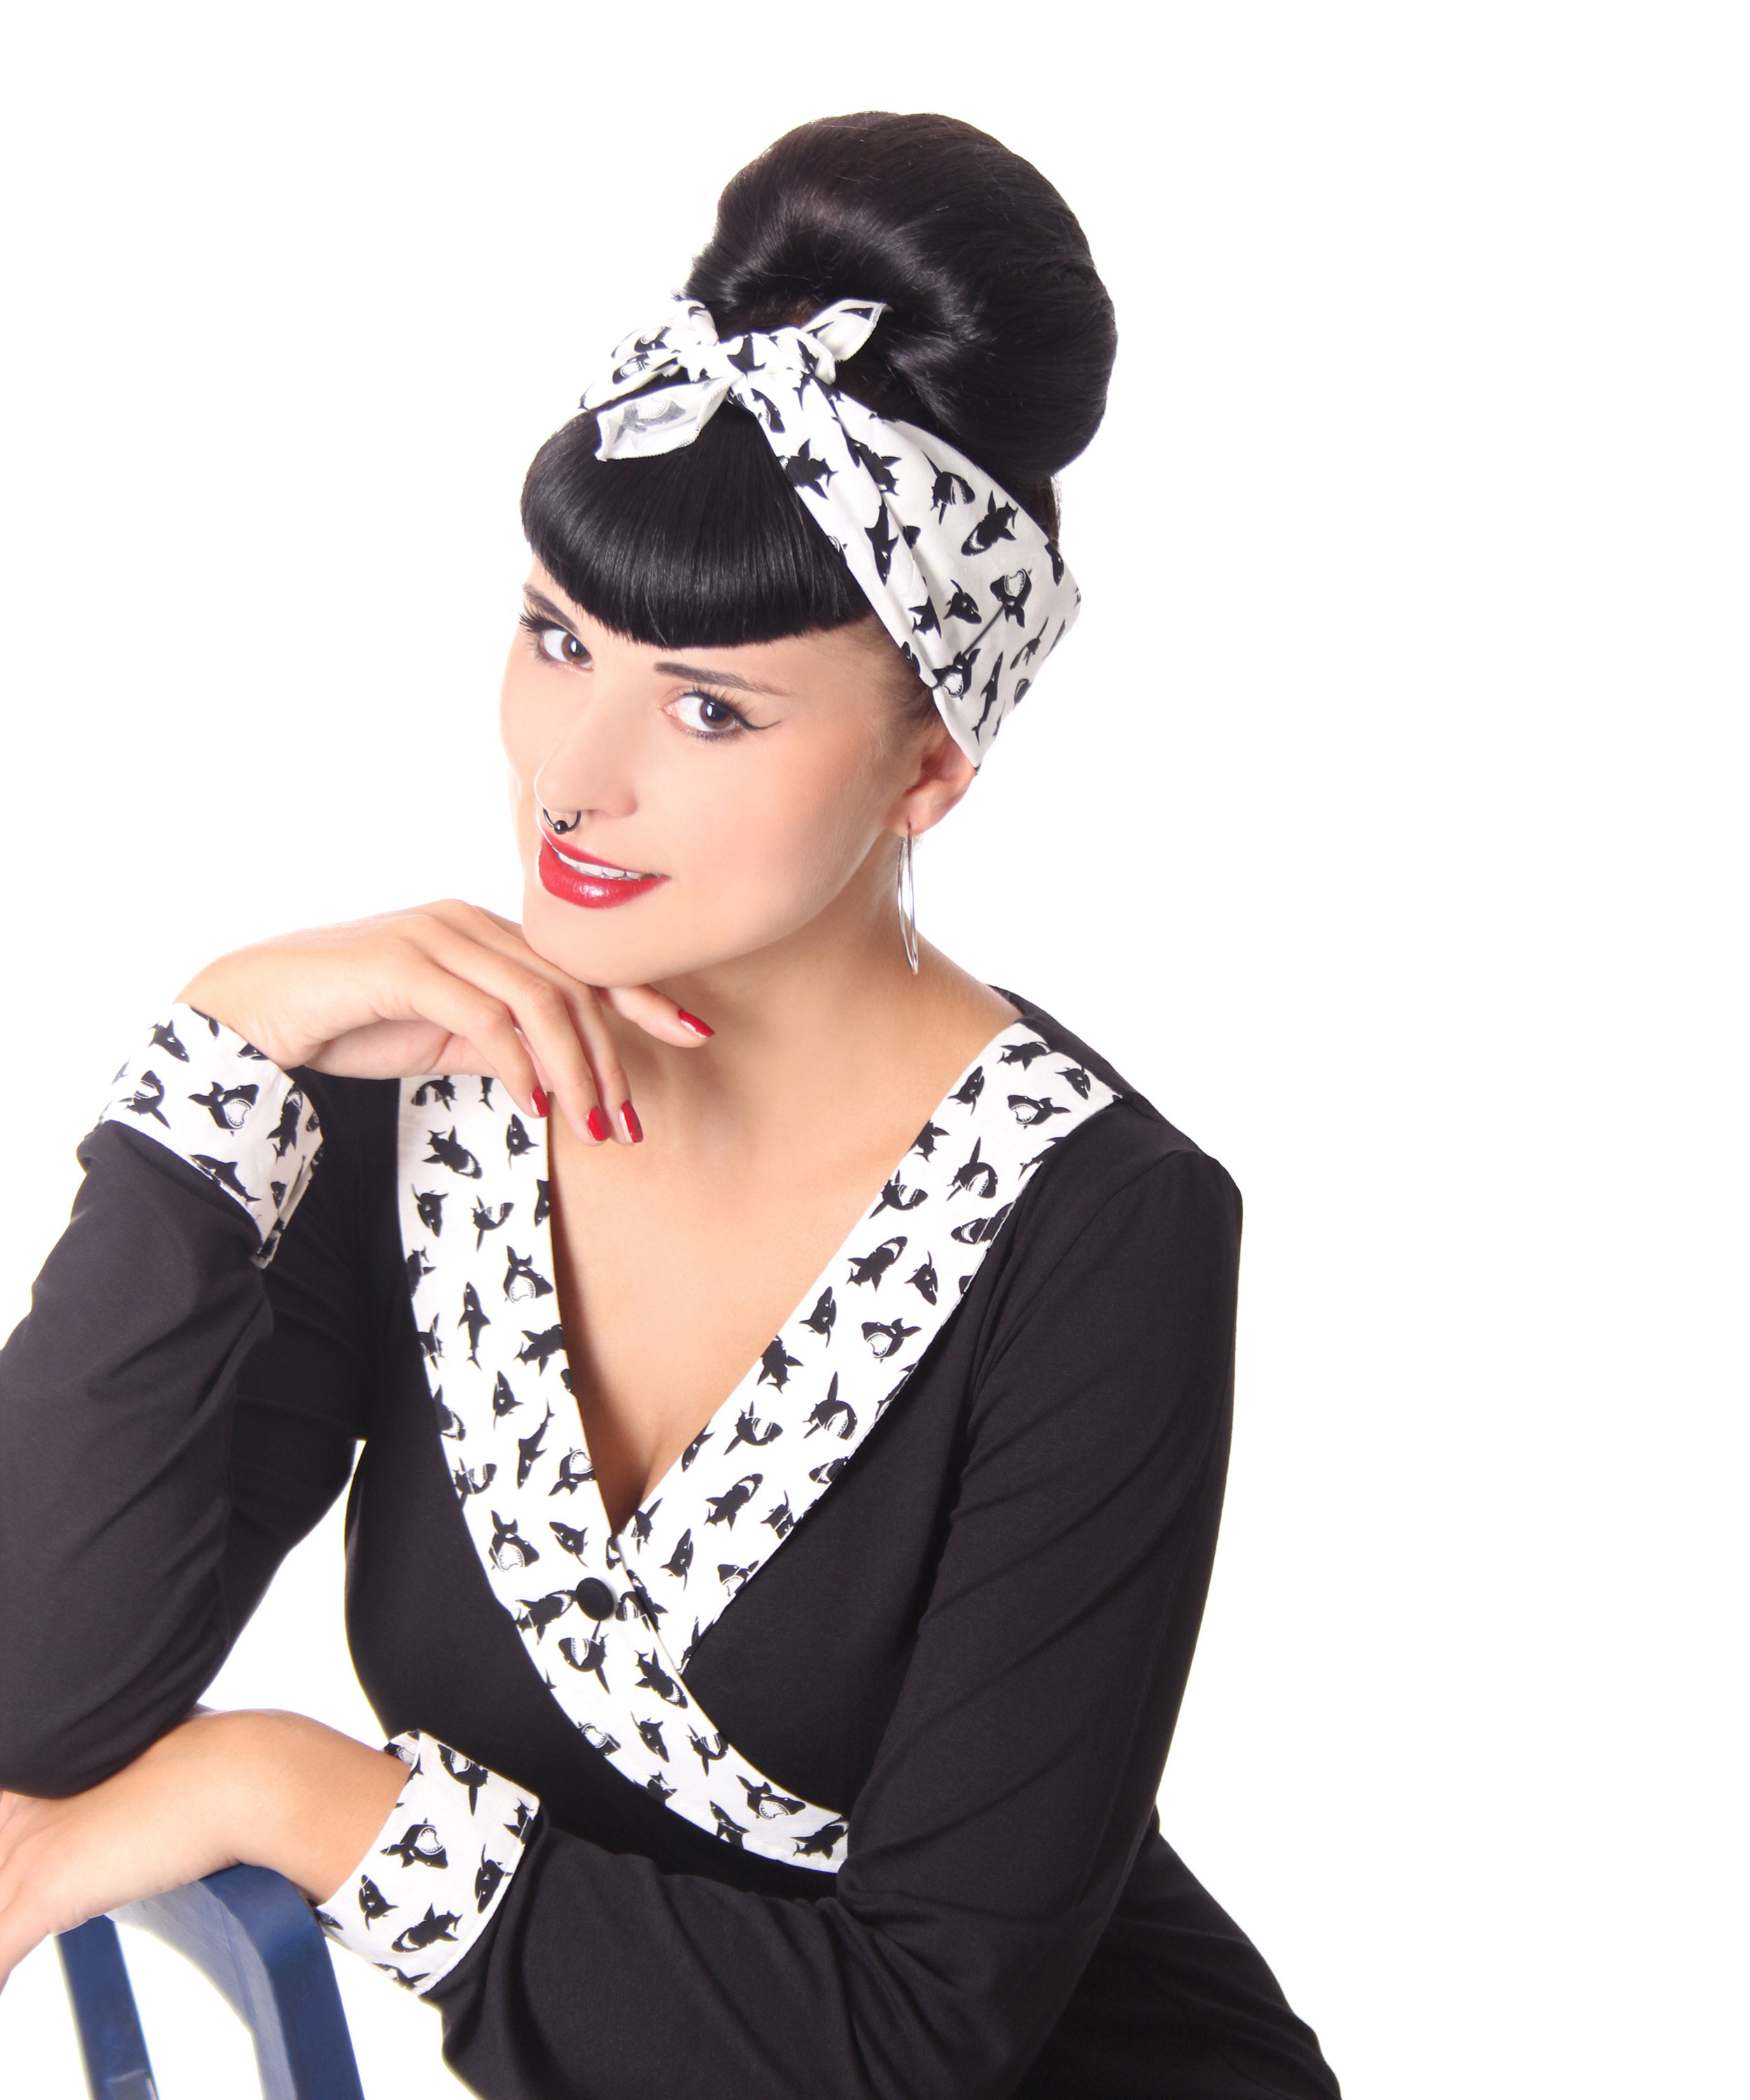 50s frisuren haifisch retro nickituch hairband haar tuch bandana v sugarshock accessoires. Black Bedroom Furniture Sets. Home Design Ideas